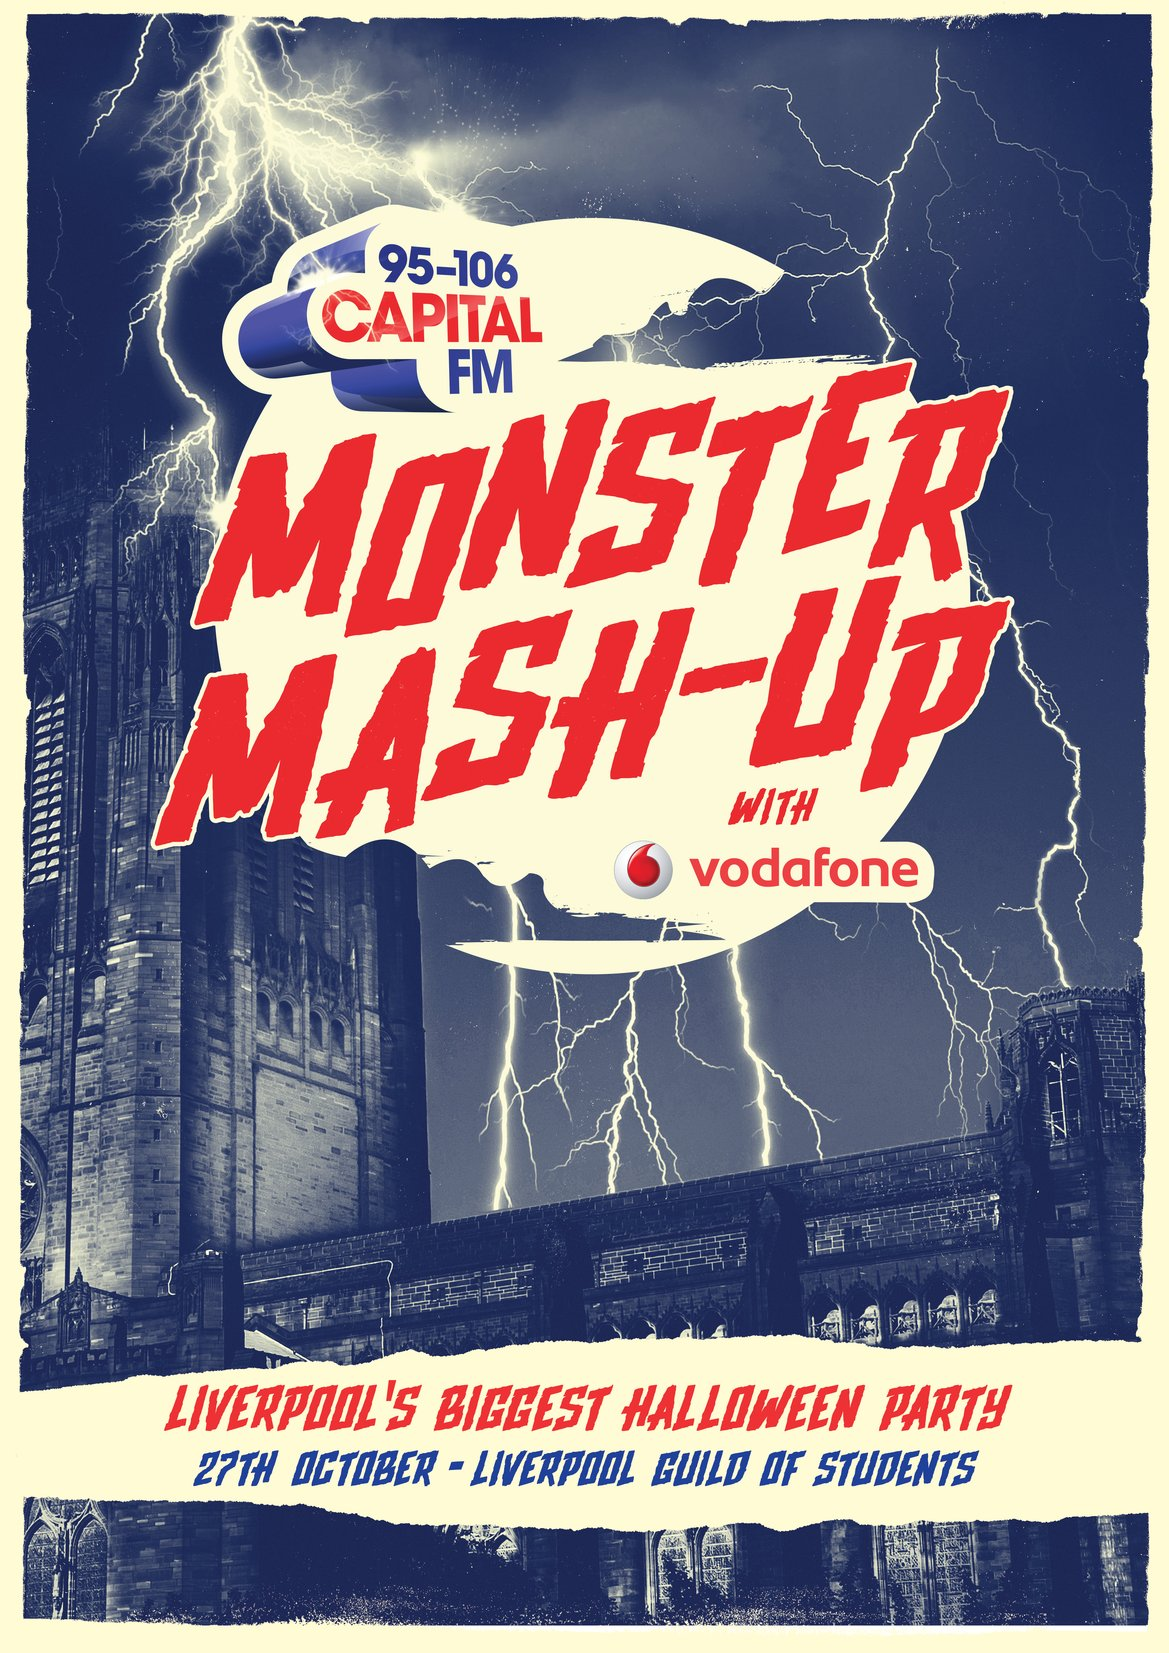 Capital's Monster Mash Up Liverpool